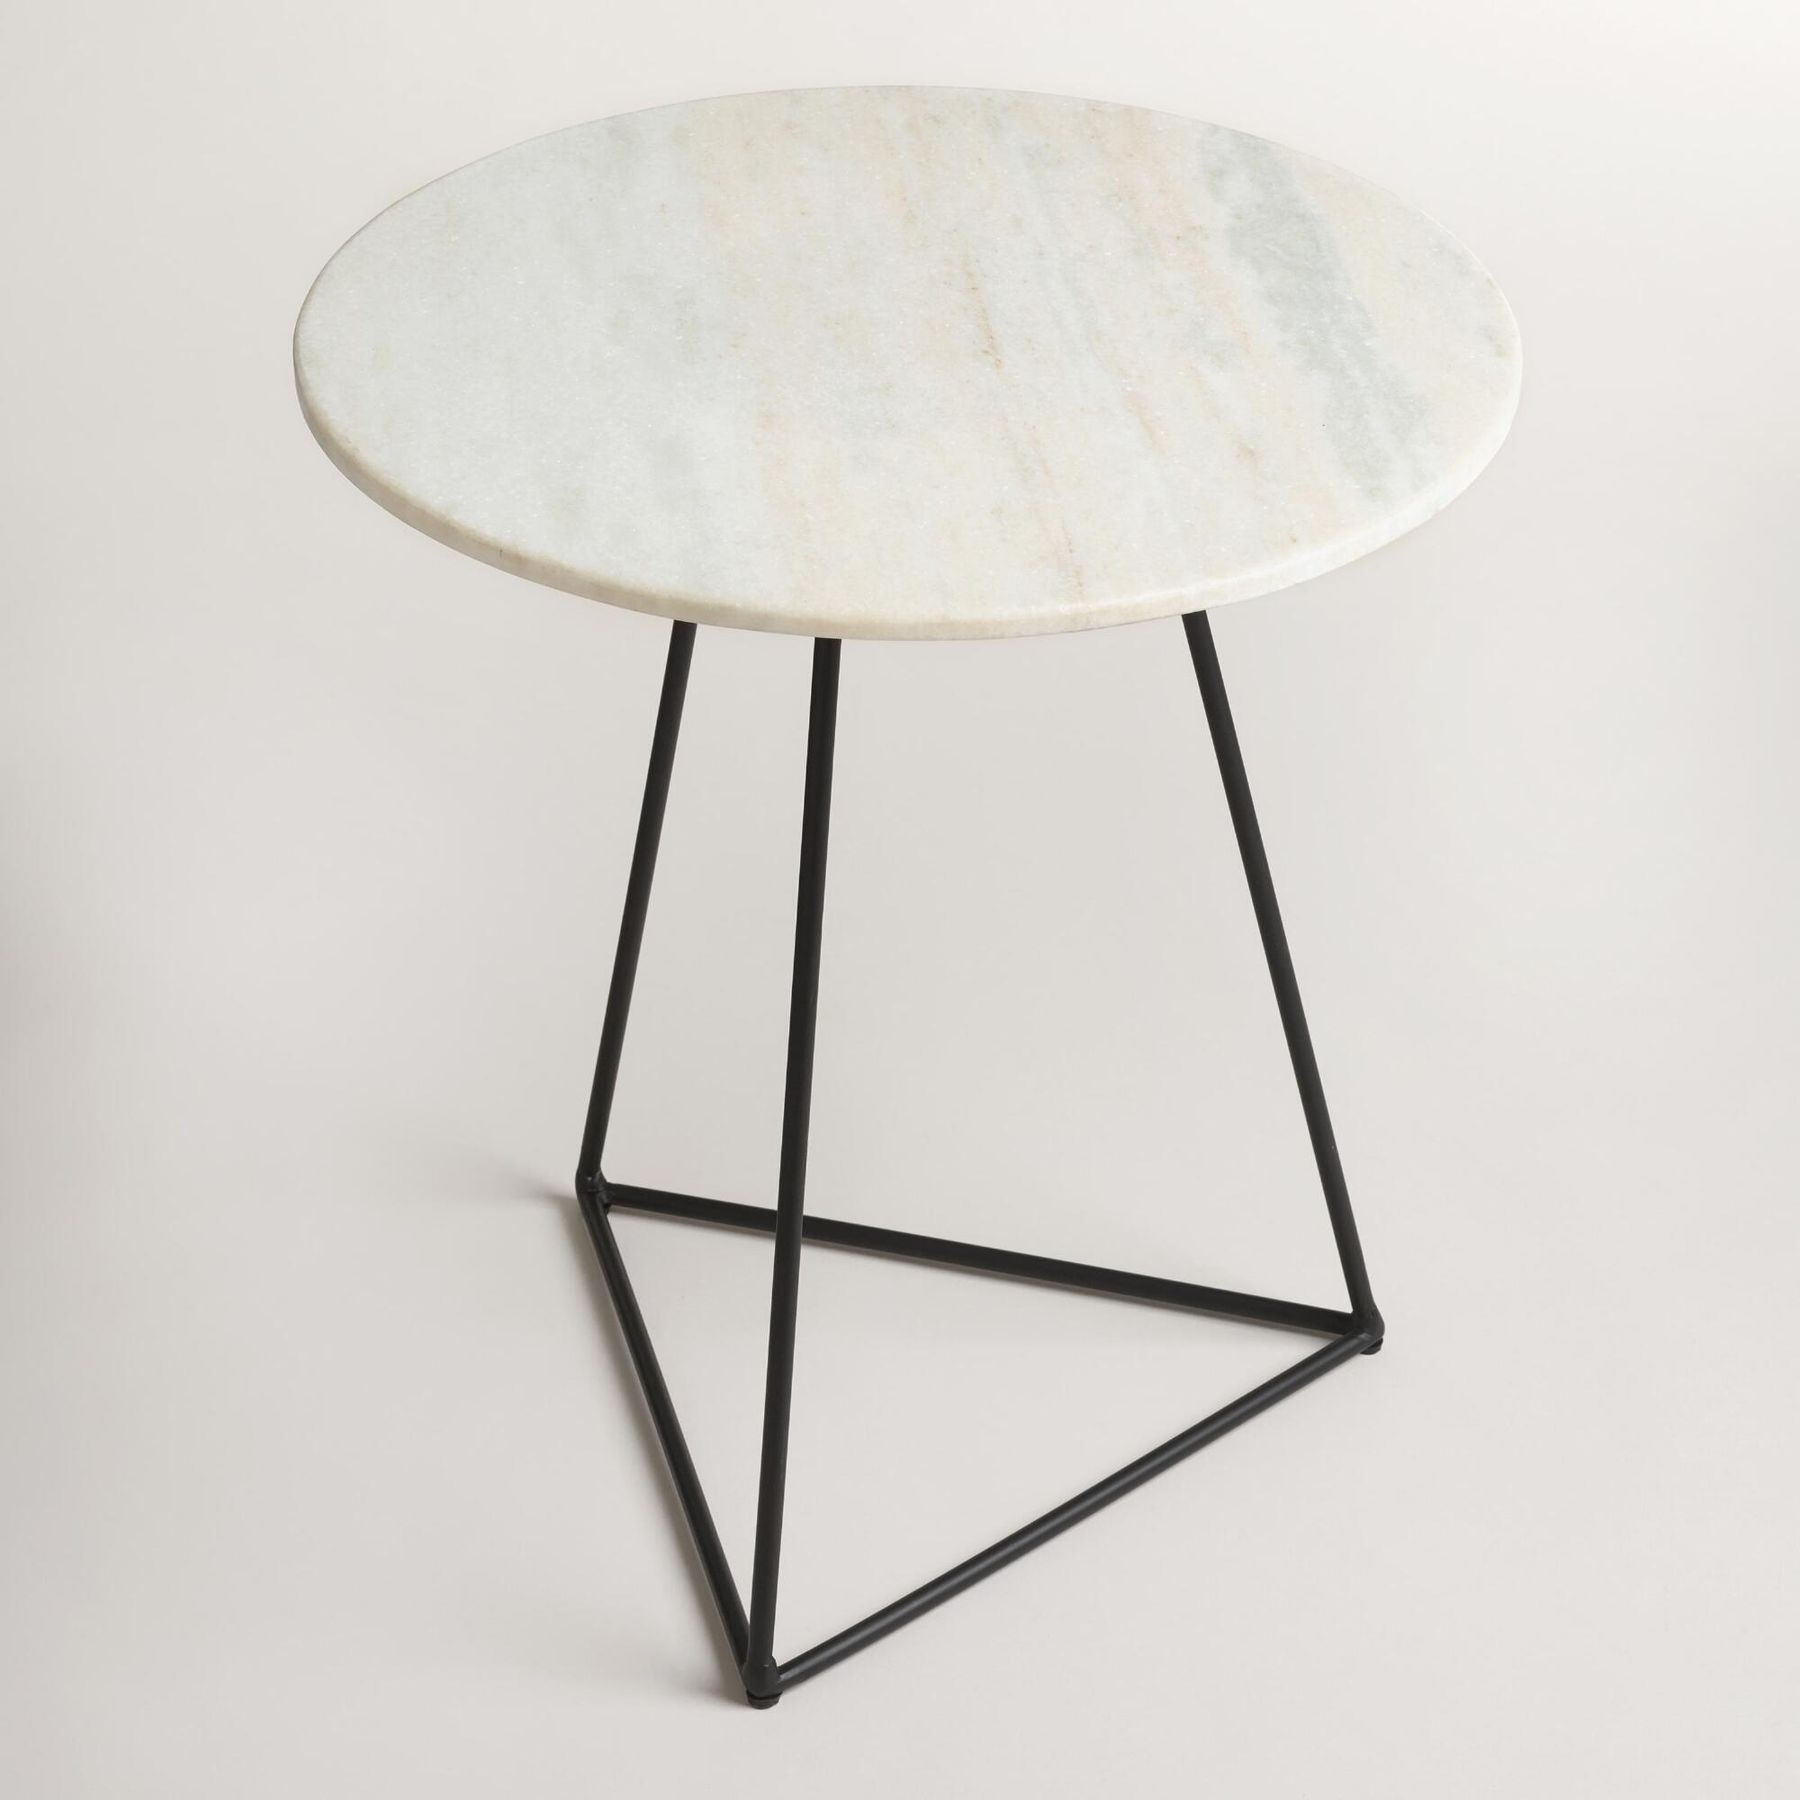 stylish side tables under things for home table living small accent with round white marble top and black steel base chair cushions pier imports sofas college dorm ping west elm